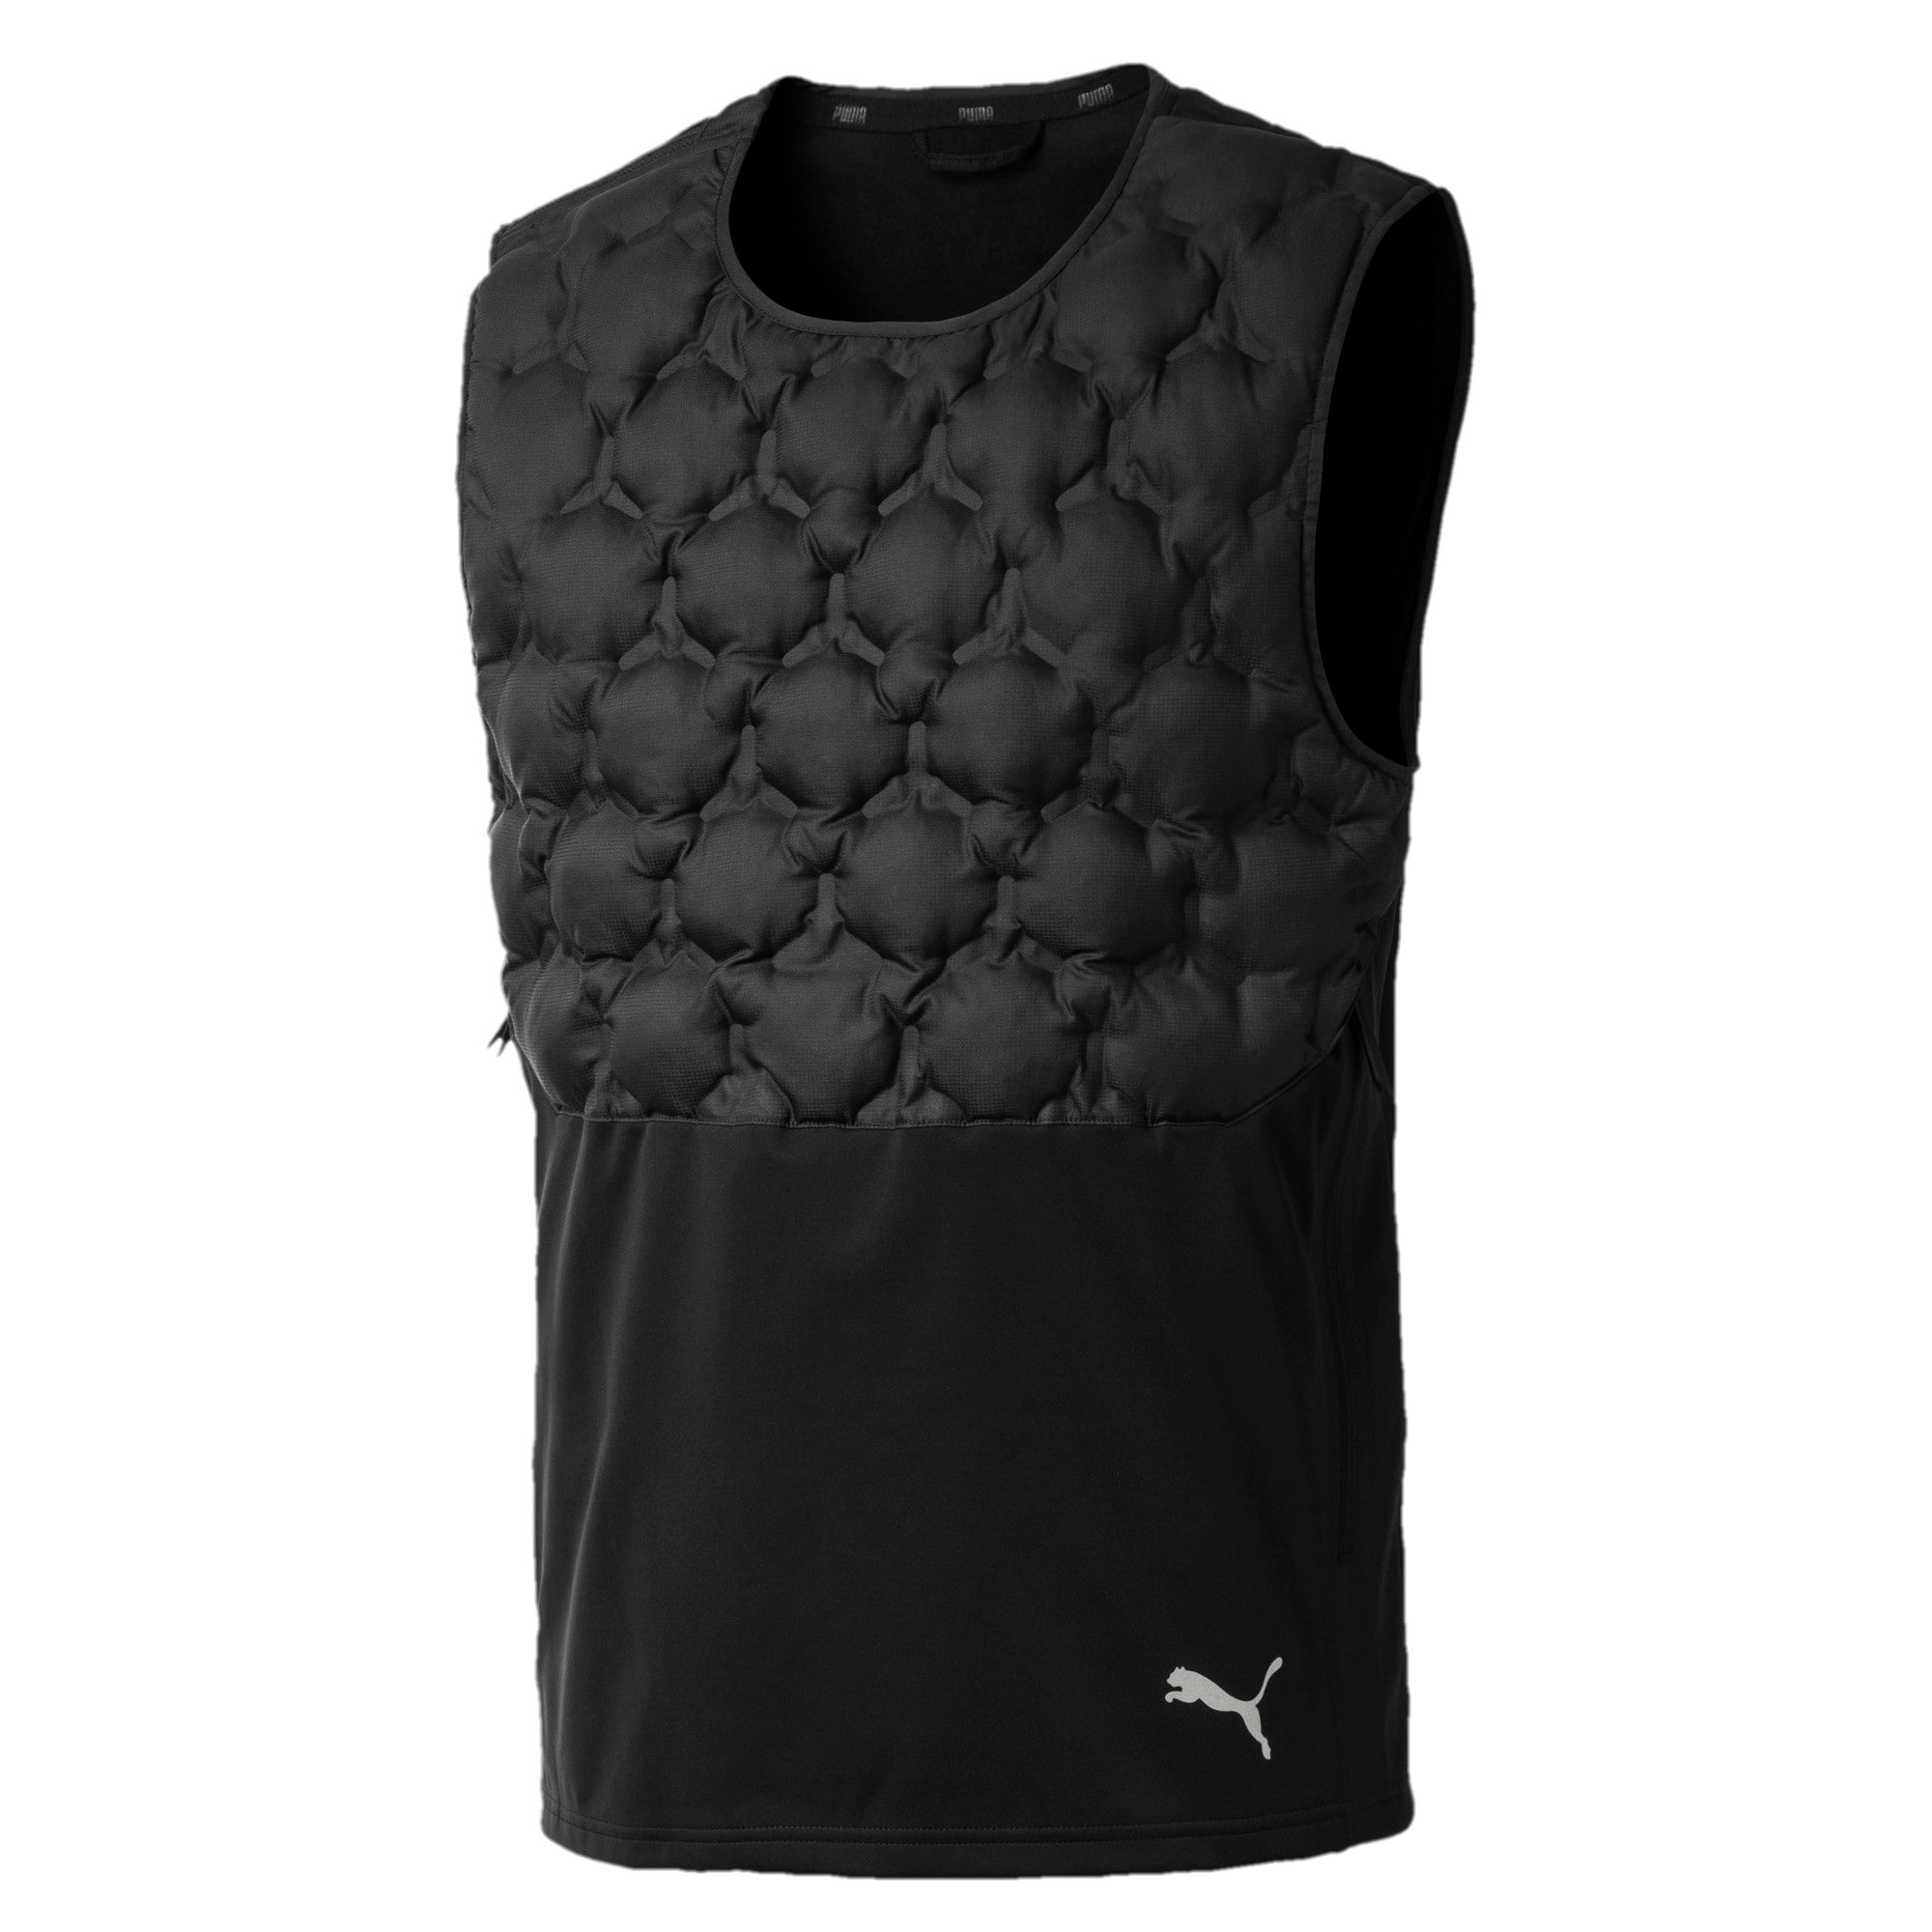 Thumbnail 5 of NeverRunBack Men's Protect Vest, Puma Black, medium-IND